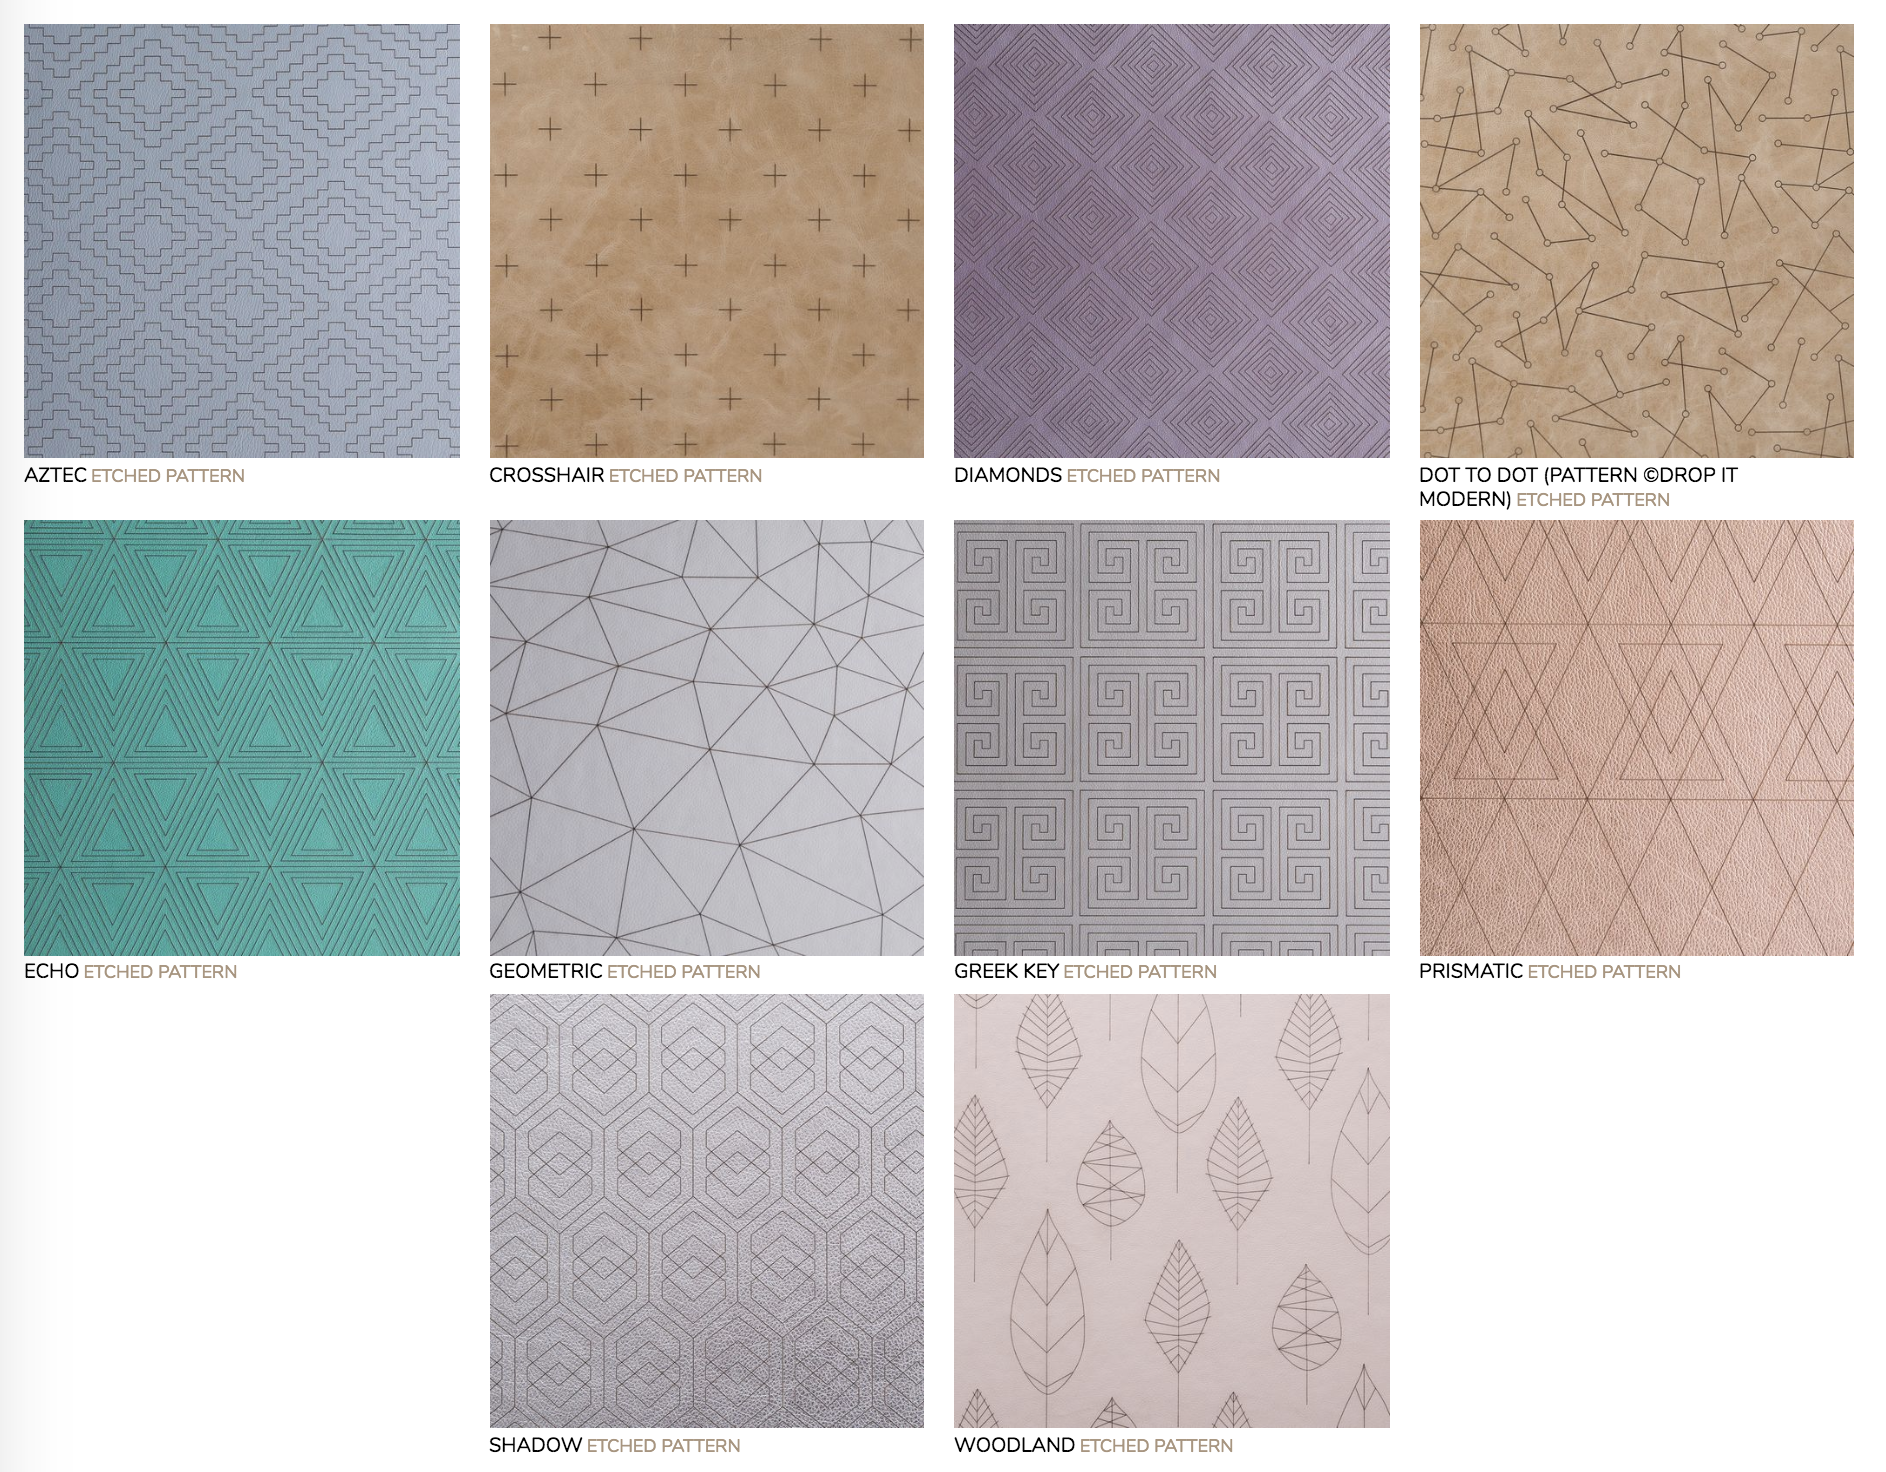 Etched Patterns:  Super fine laser design cuts made in cover material. Not available for Linen covers.